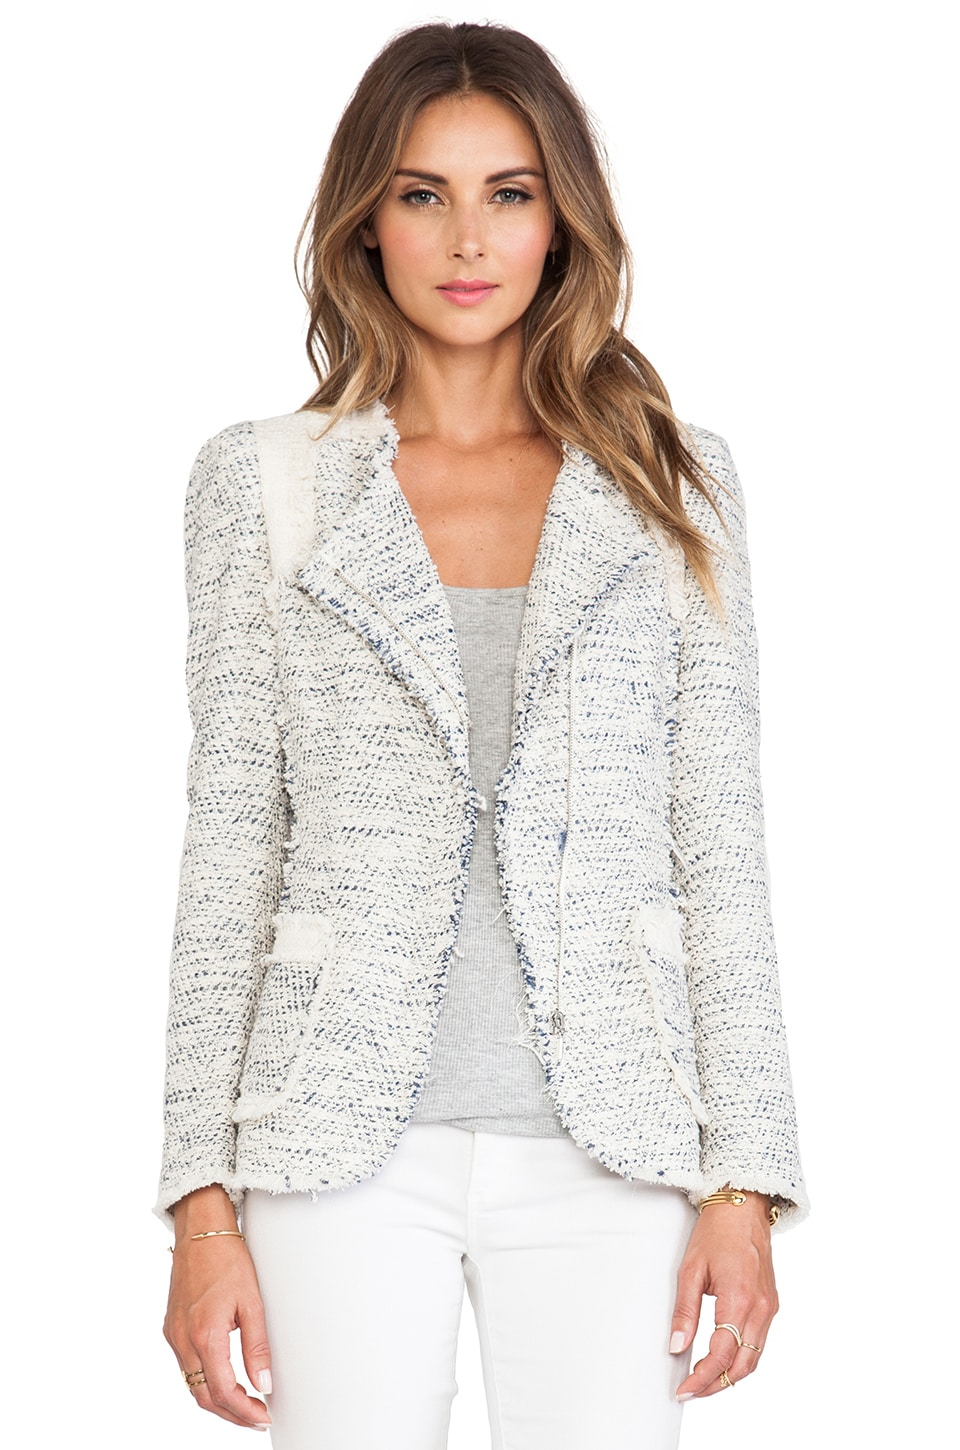 Rebecca Taylor Color Block Tweed Blazer in Navy Combo